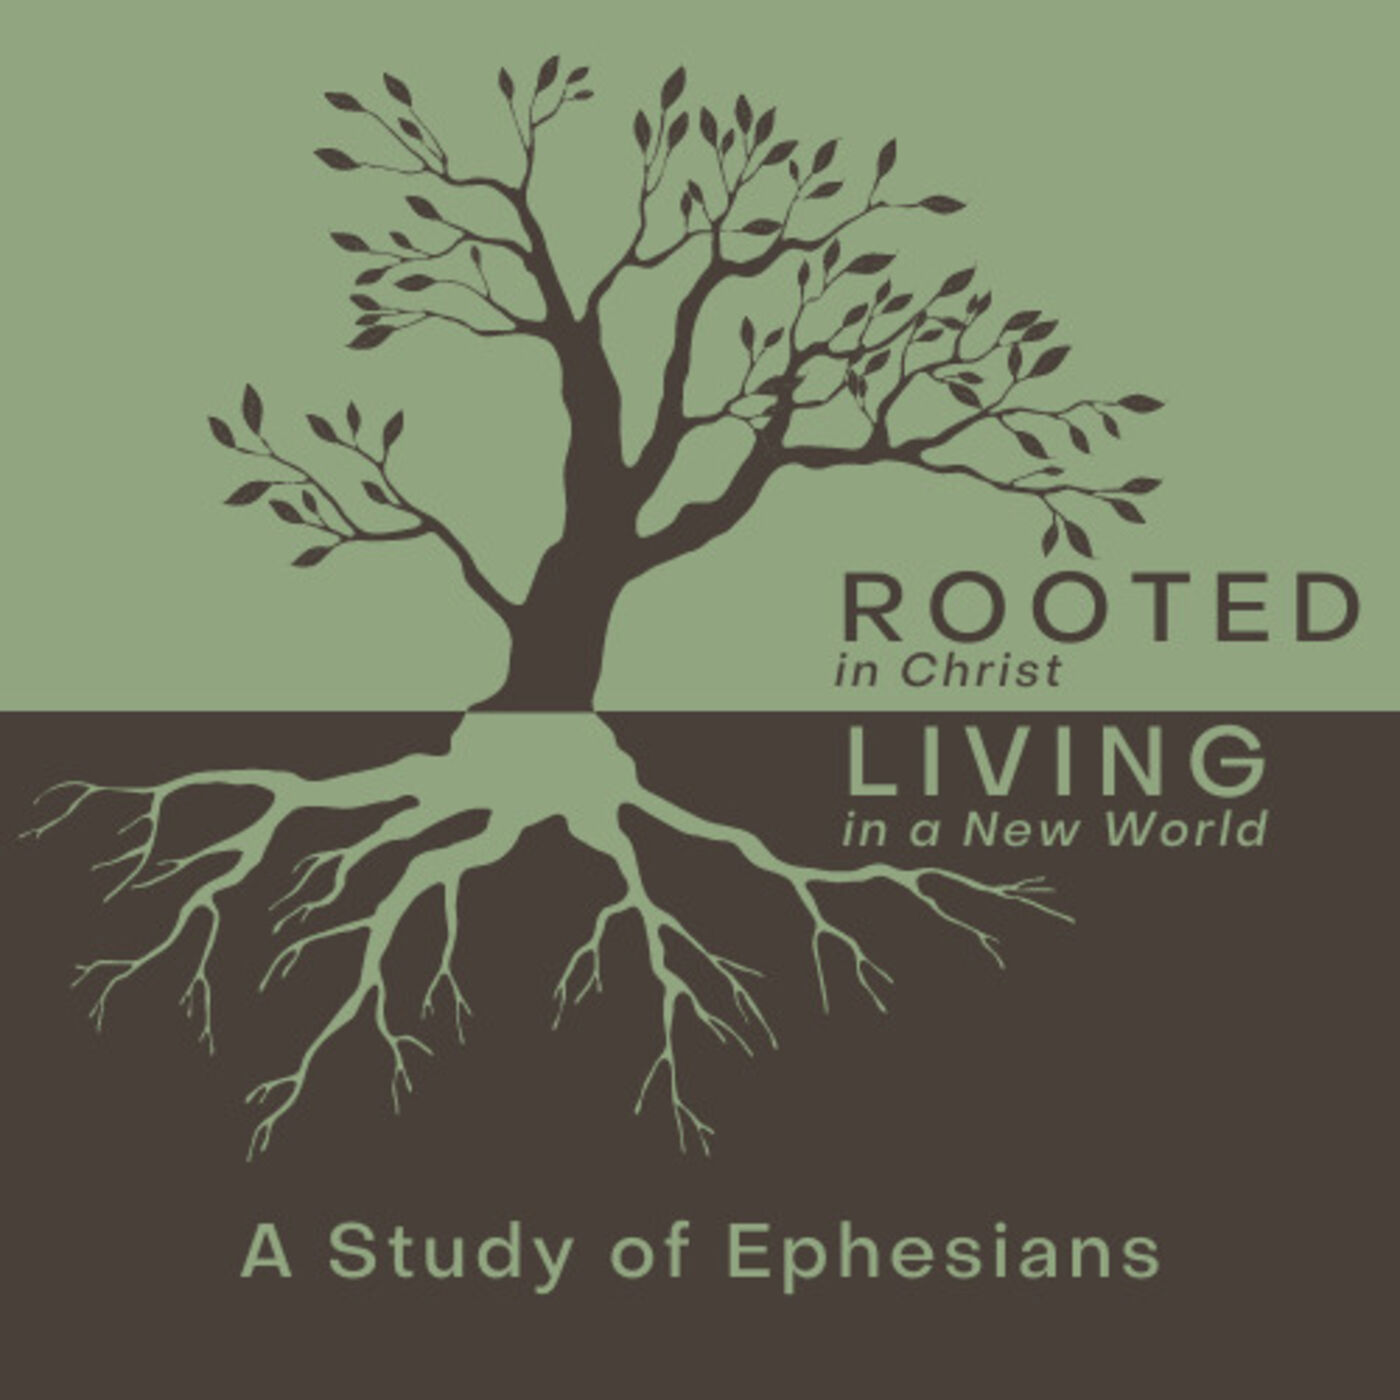 Rooted in Christ, Living in a New World - His Immeasurable Riches